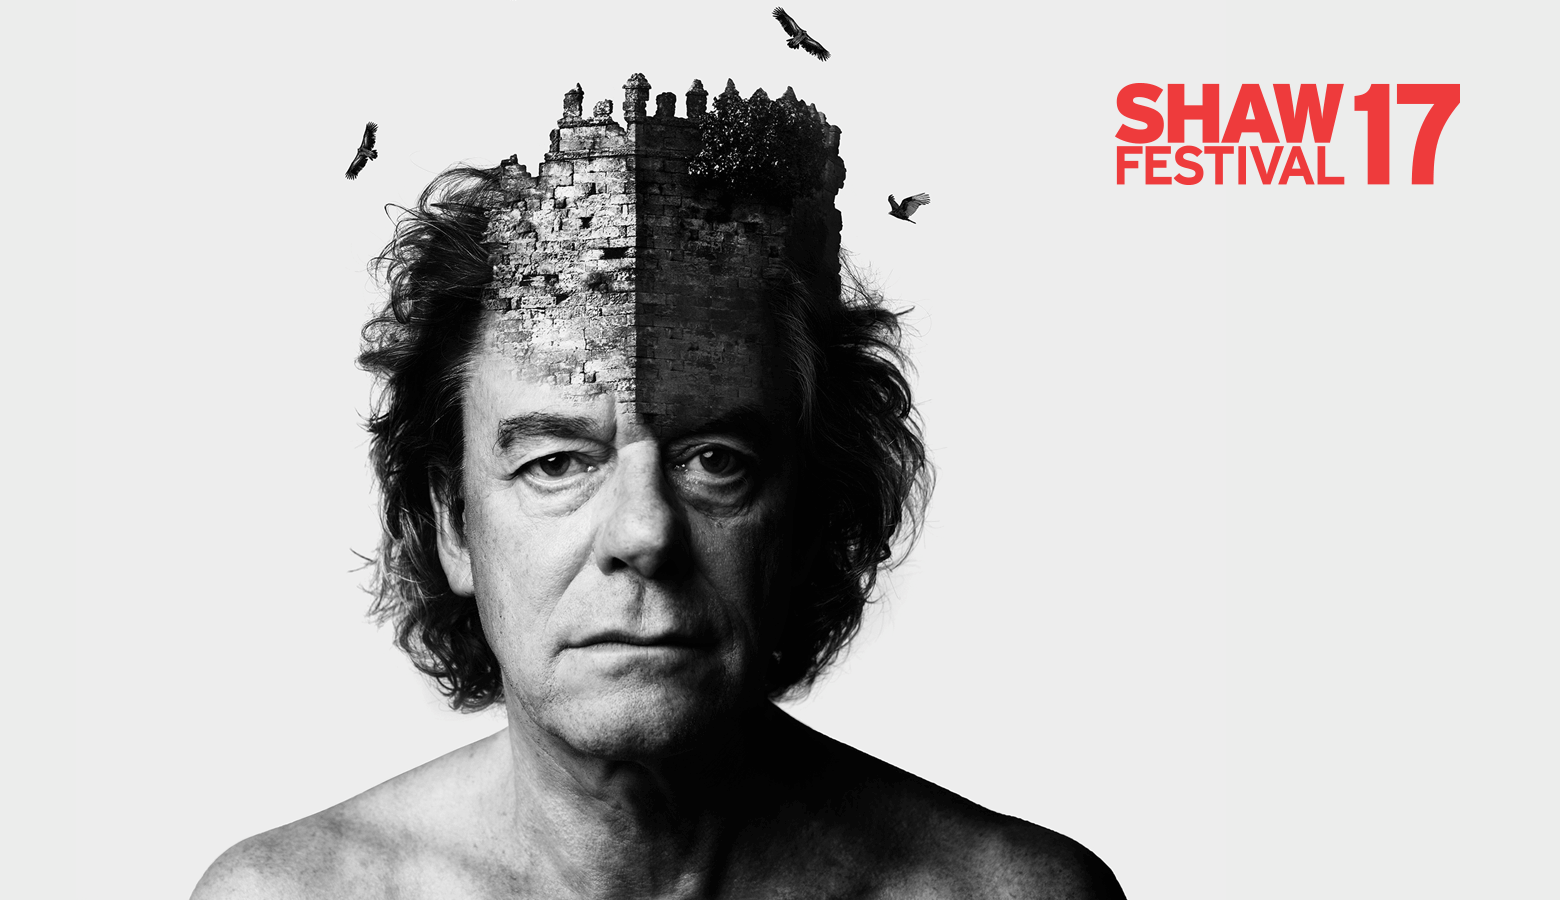 The Shaw Festival